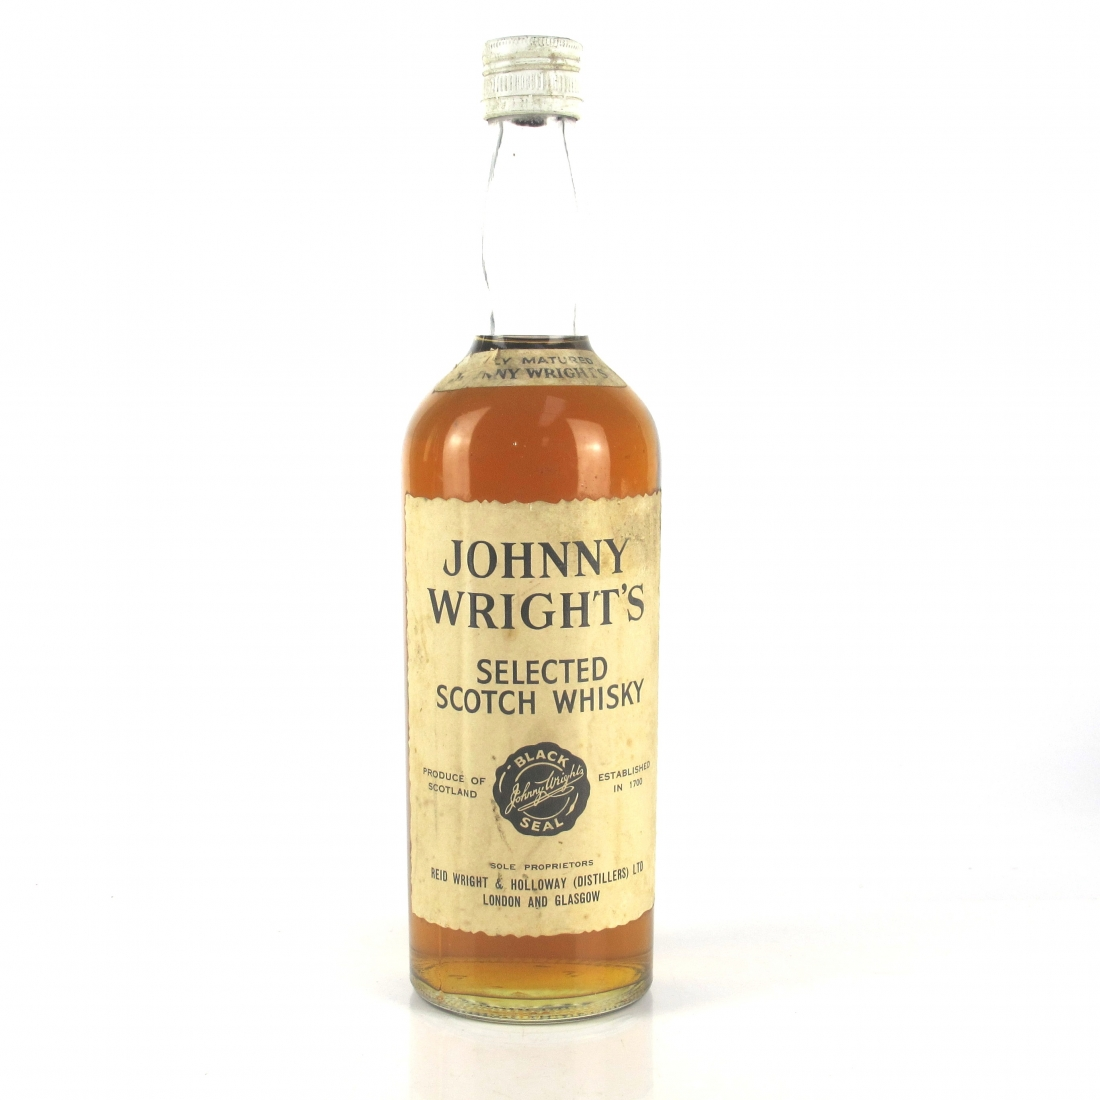 Johnny Wright's Selected Scotch Whisky 1960s